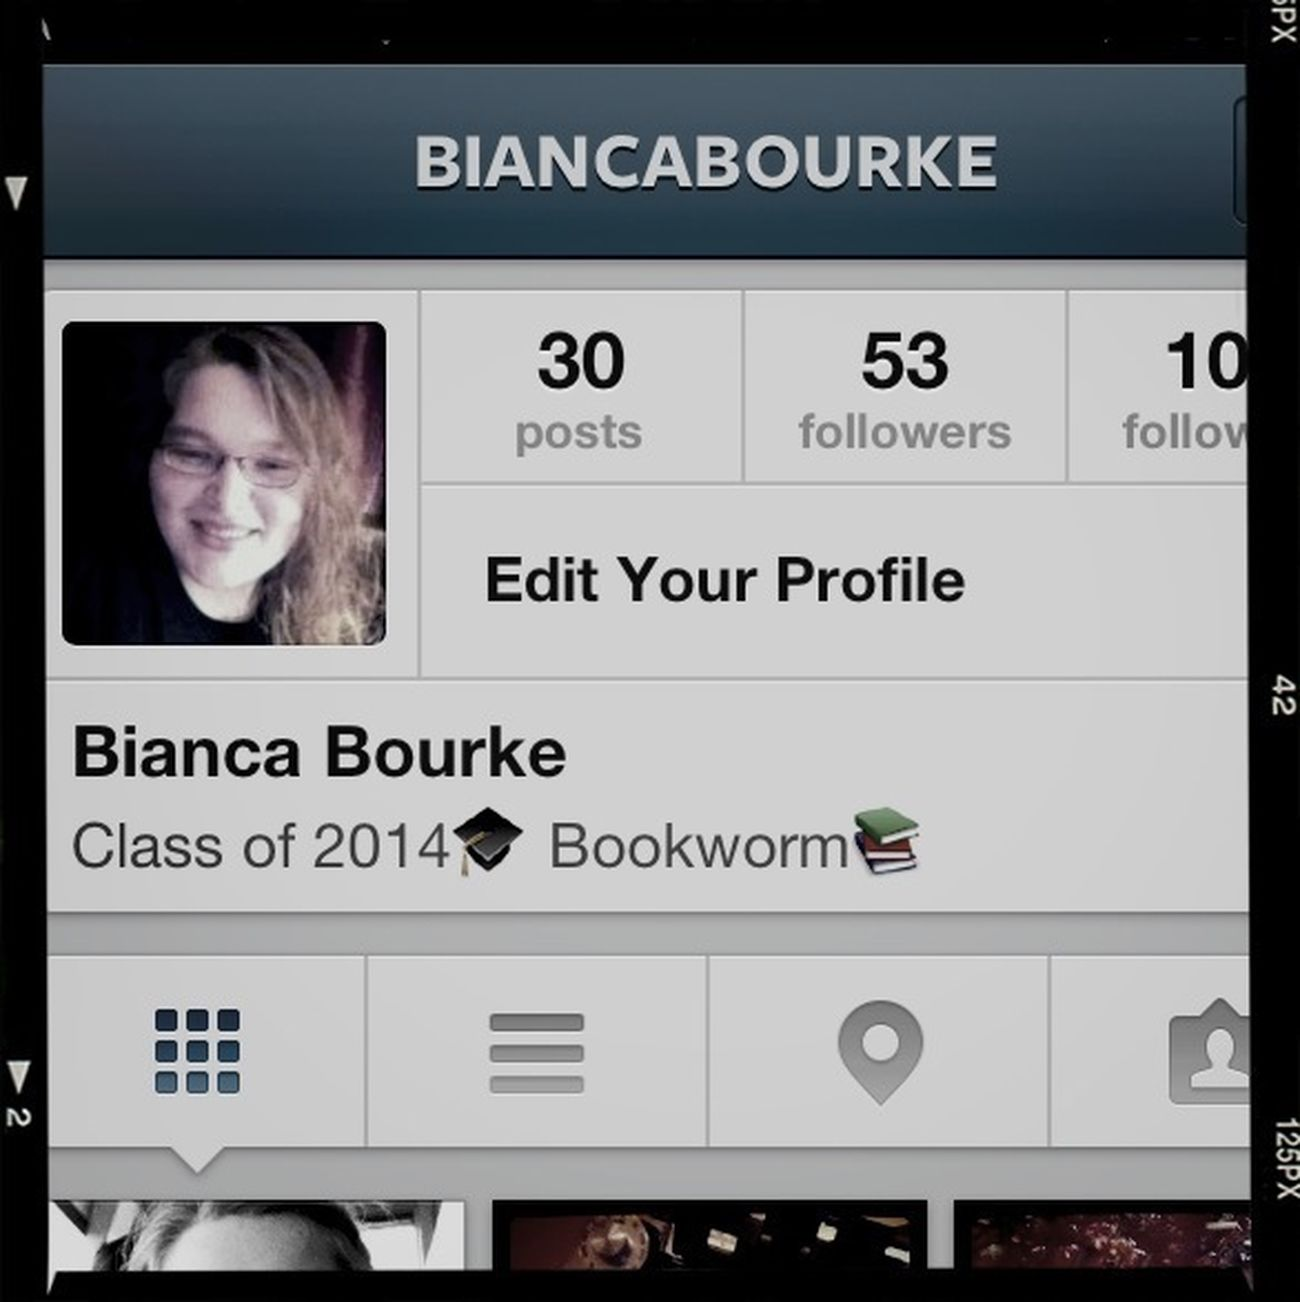 Instagram Follow Me On Instagram I Follow Back Follow Me On Instagram!  Follow me i follow back